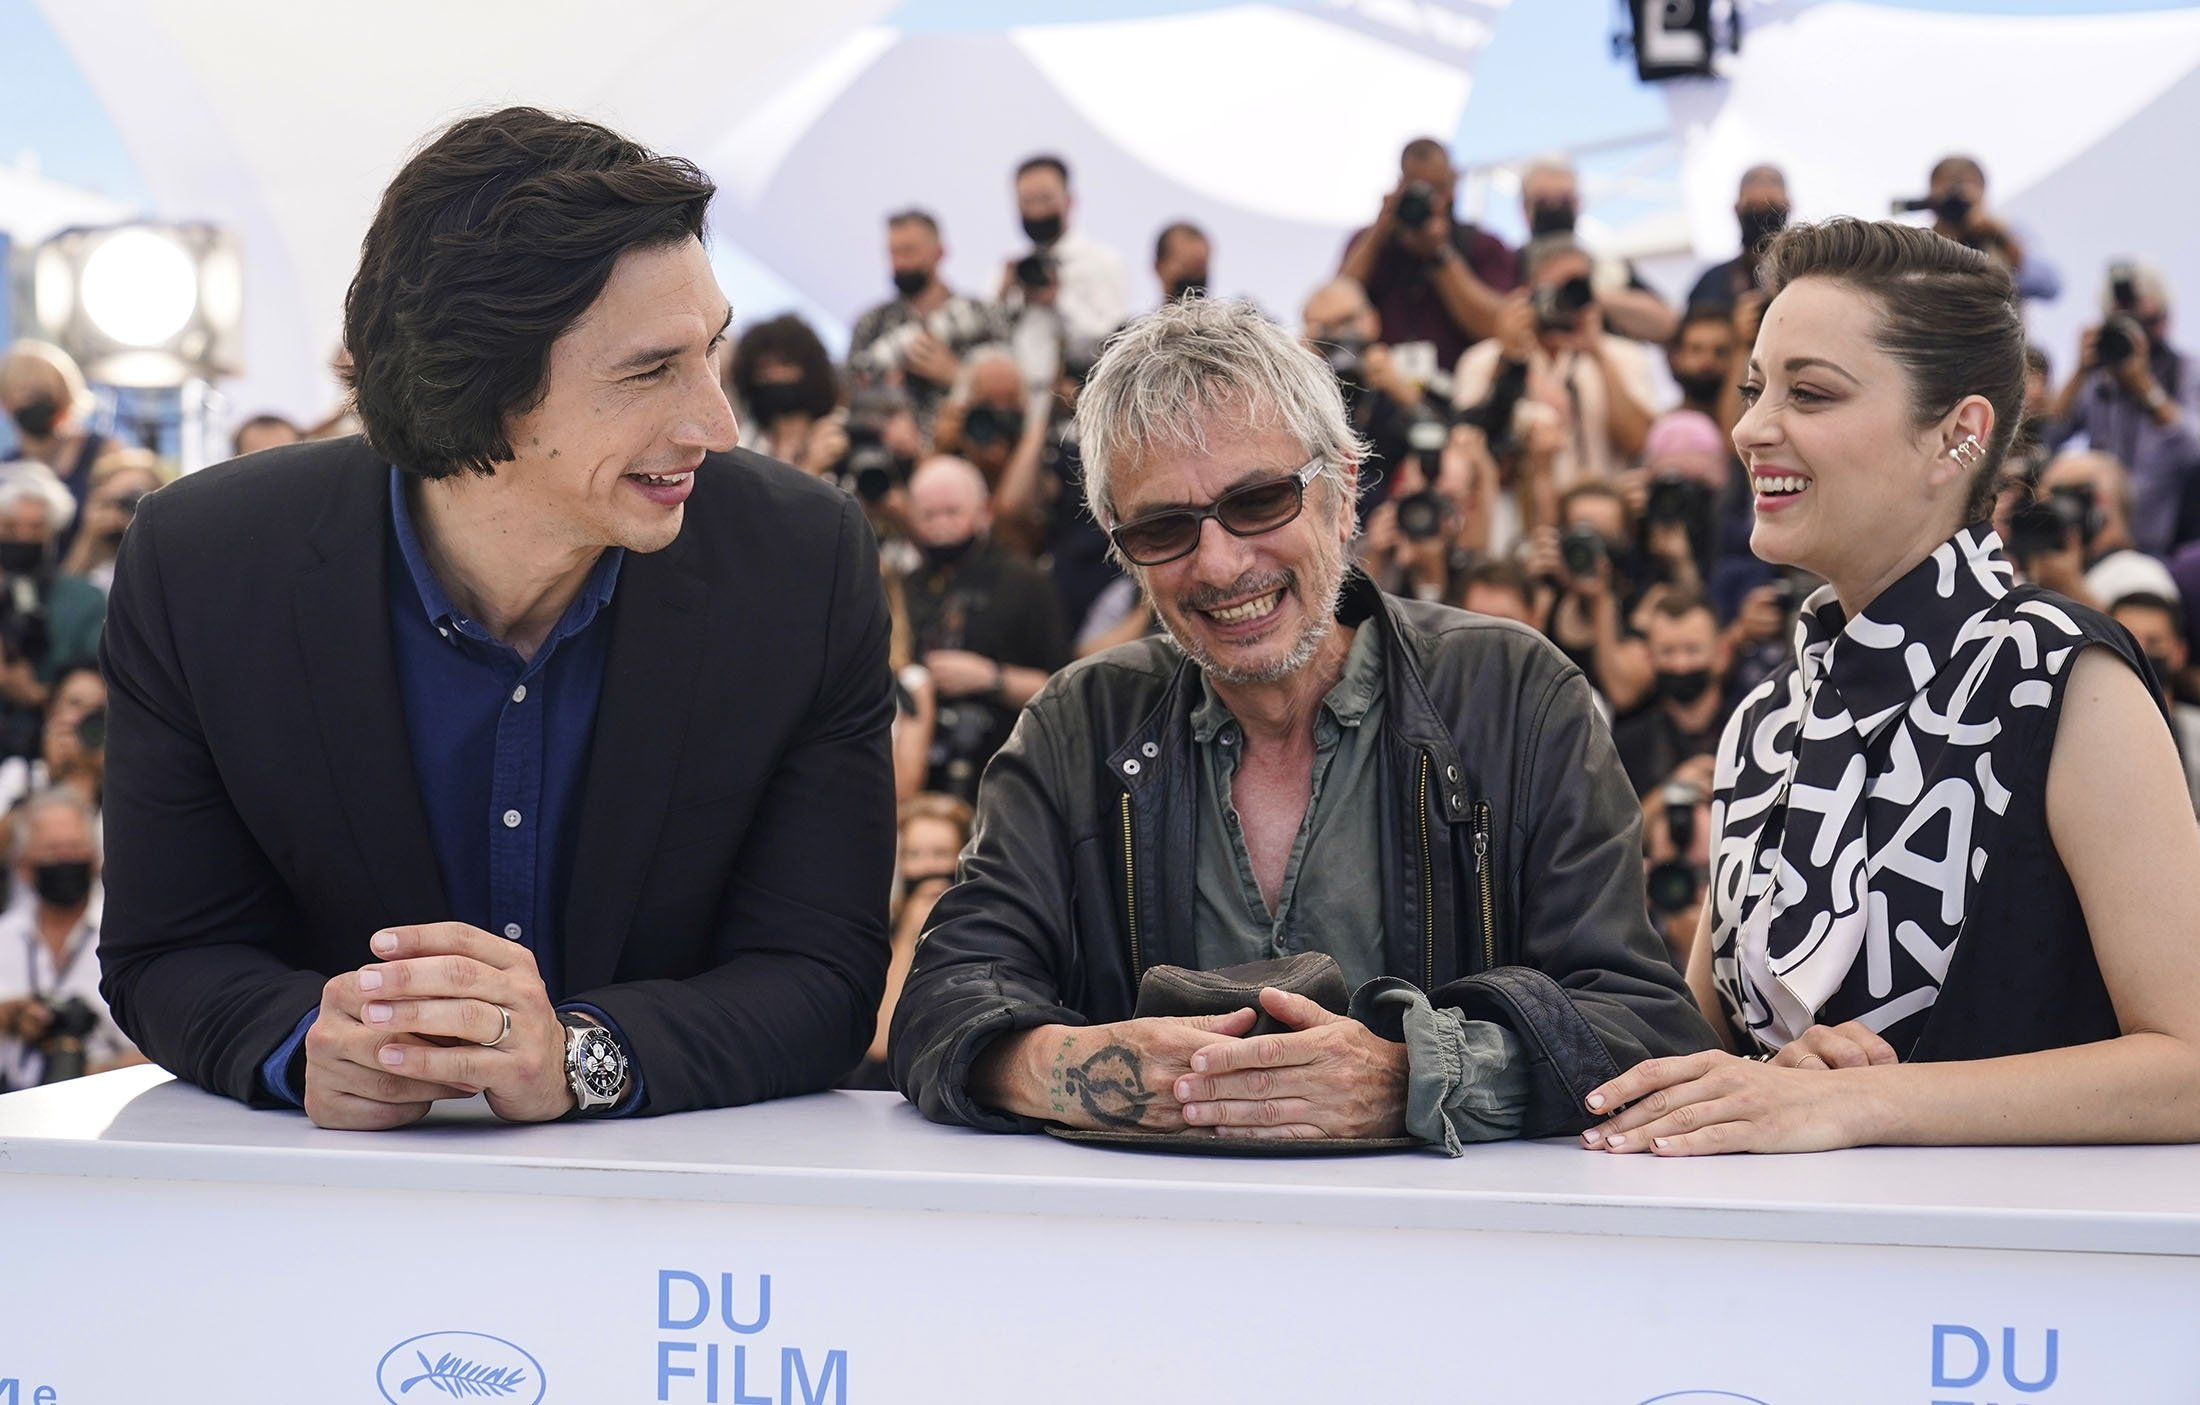 Actors Adam Driver (L) and Marion Cotillard appear with director Leos Carax at the photocall for their film 'Annette' at the 74th international film festival, Cannes, southern France, July 6, 2021. (AP Photo)